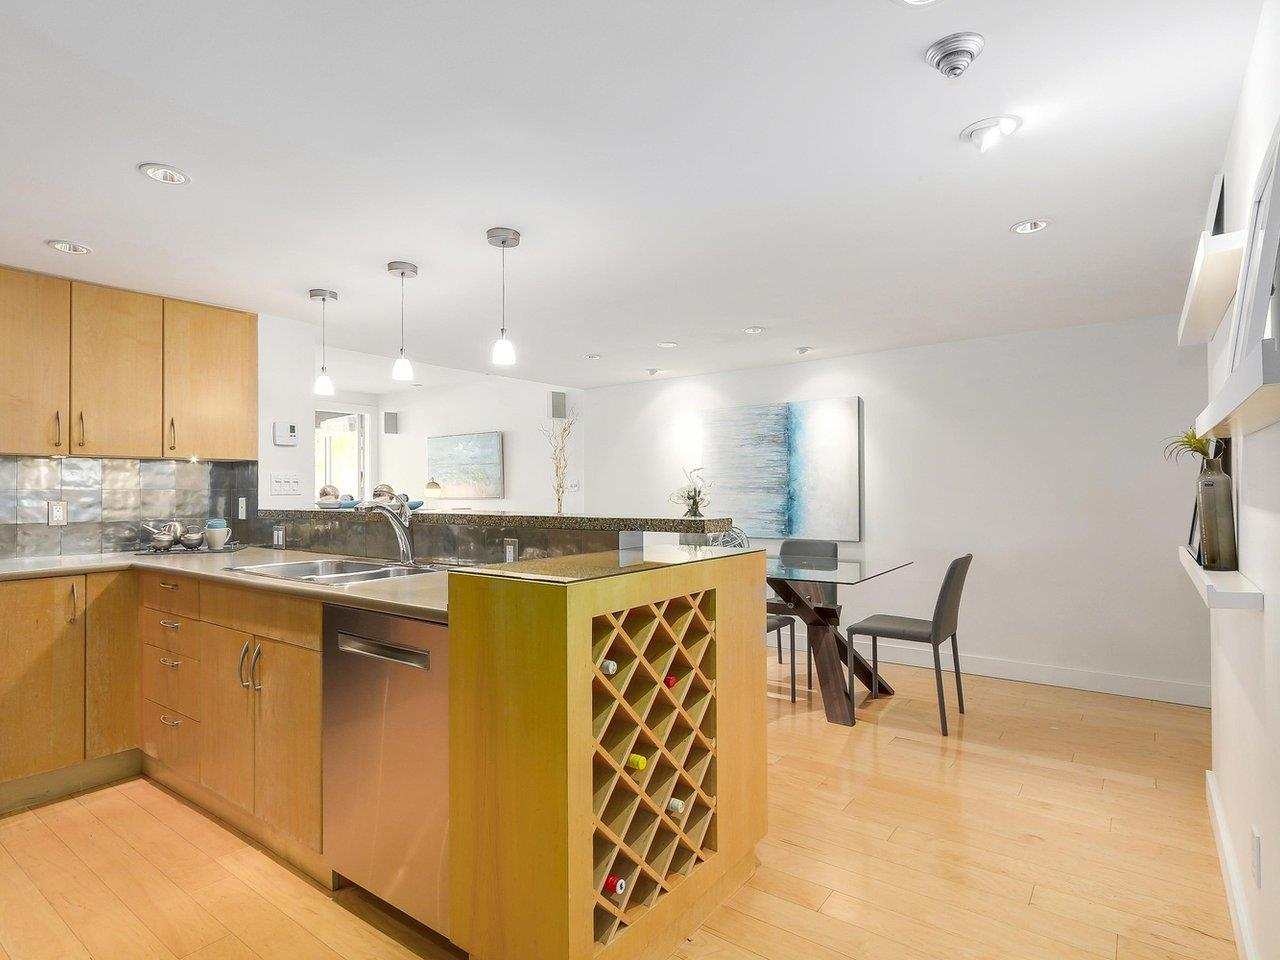 "Photo 3: 2411 W 1ST Avenue in Vancouver: Kitsilano Townhouse for sale in ""Bayside Manor"" (Vancouver West)  : MLS® # R2191405"